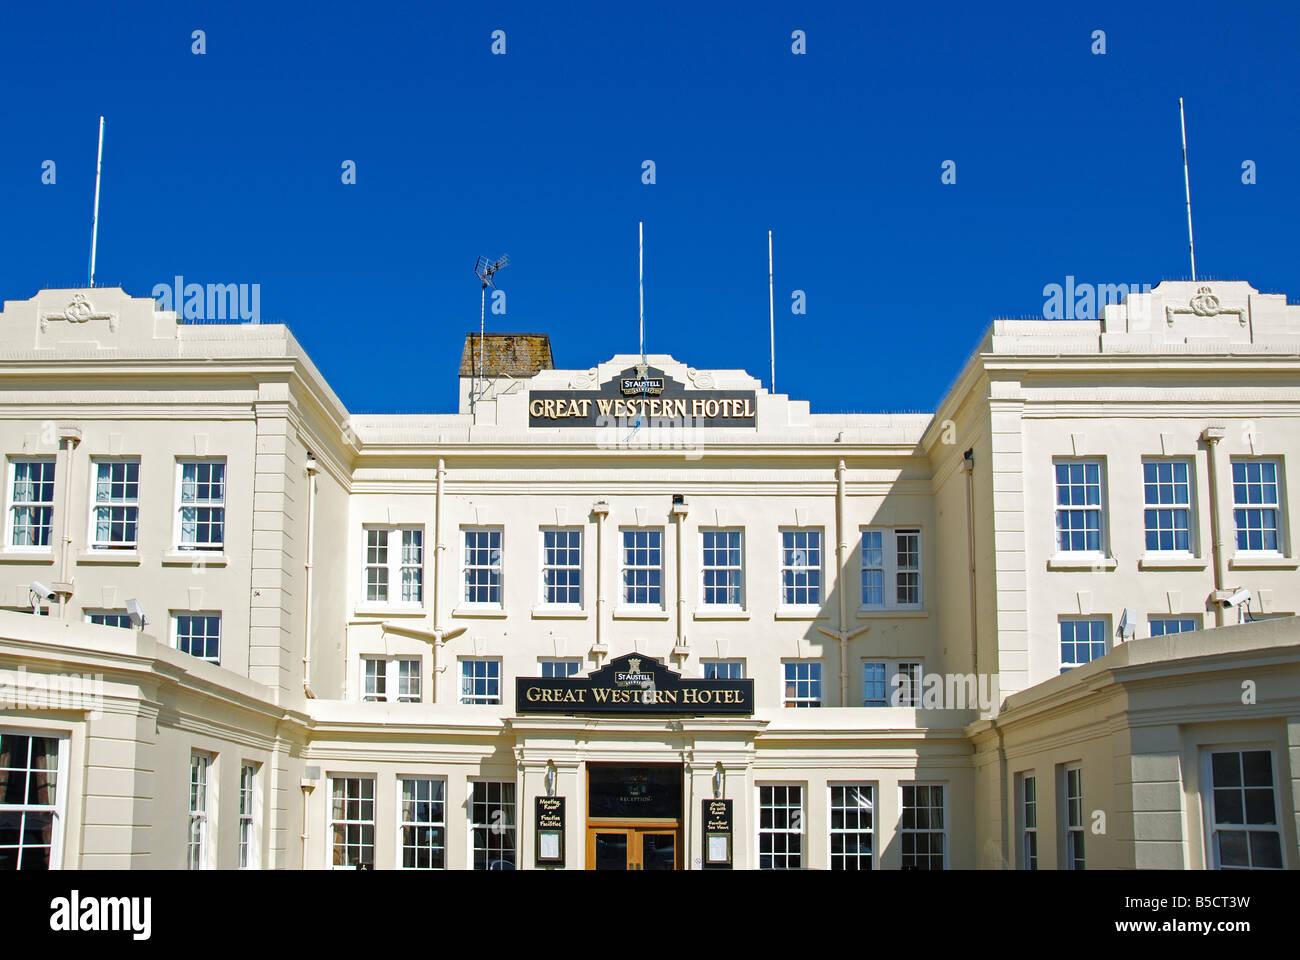 the front entrance to the great western hotel in newquay,cornwall,uk - Stock Image